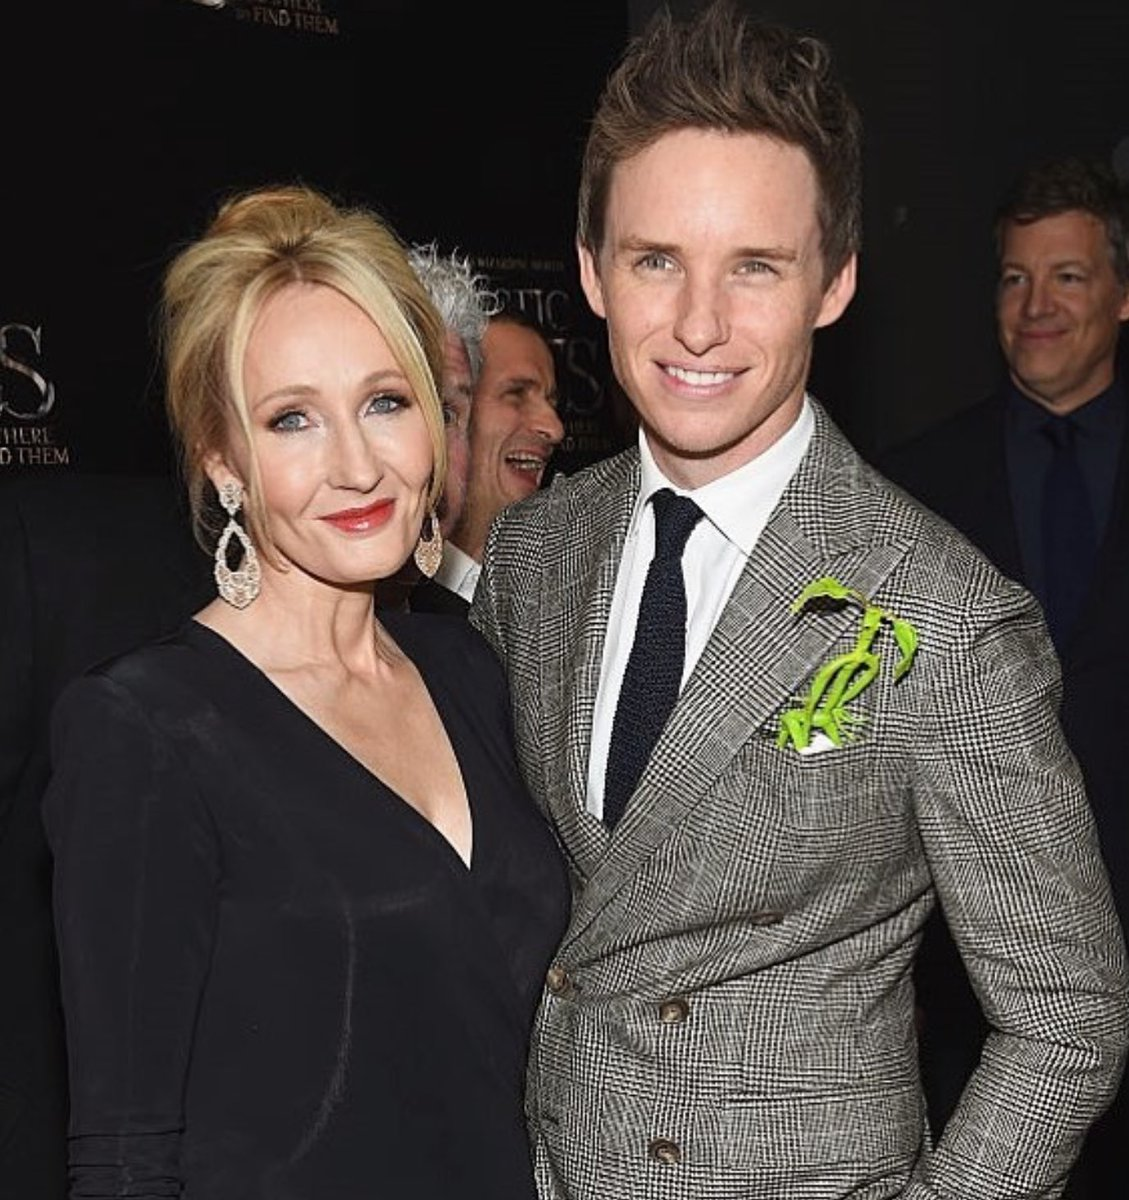 Eddie Redmayne with a bowtruckle